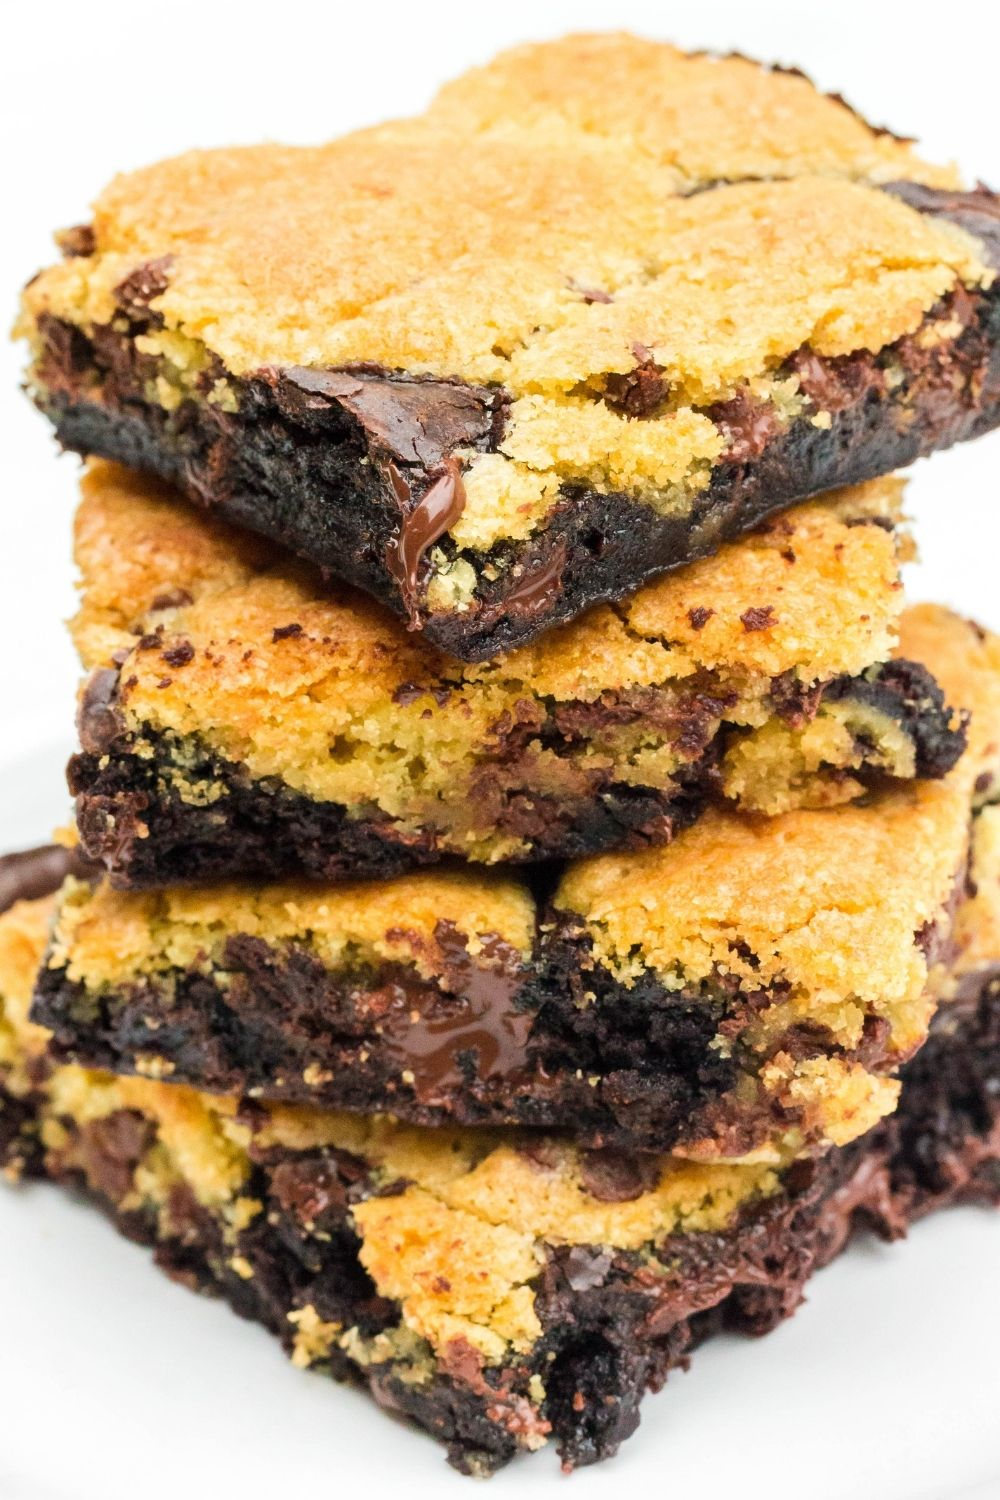 a stack of marbled cookie brownies served on a white plate, showing both the brownie layer and the chocolate chip cookie layers swirled together